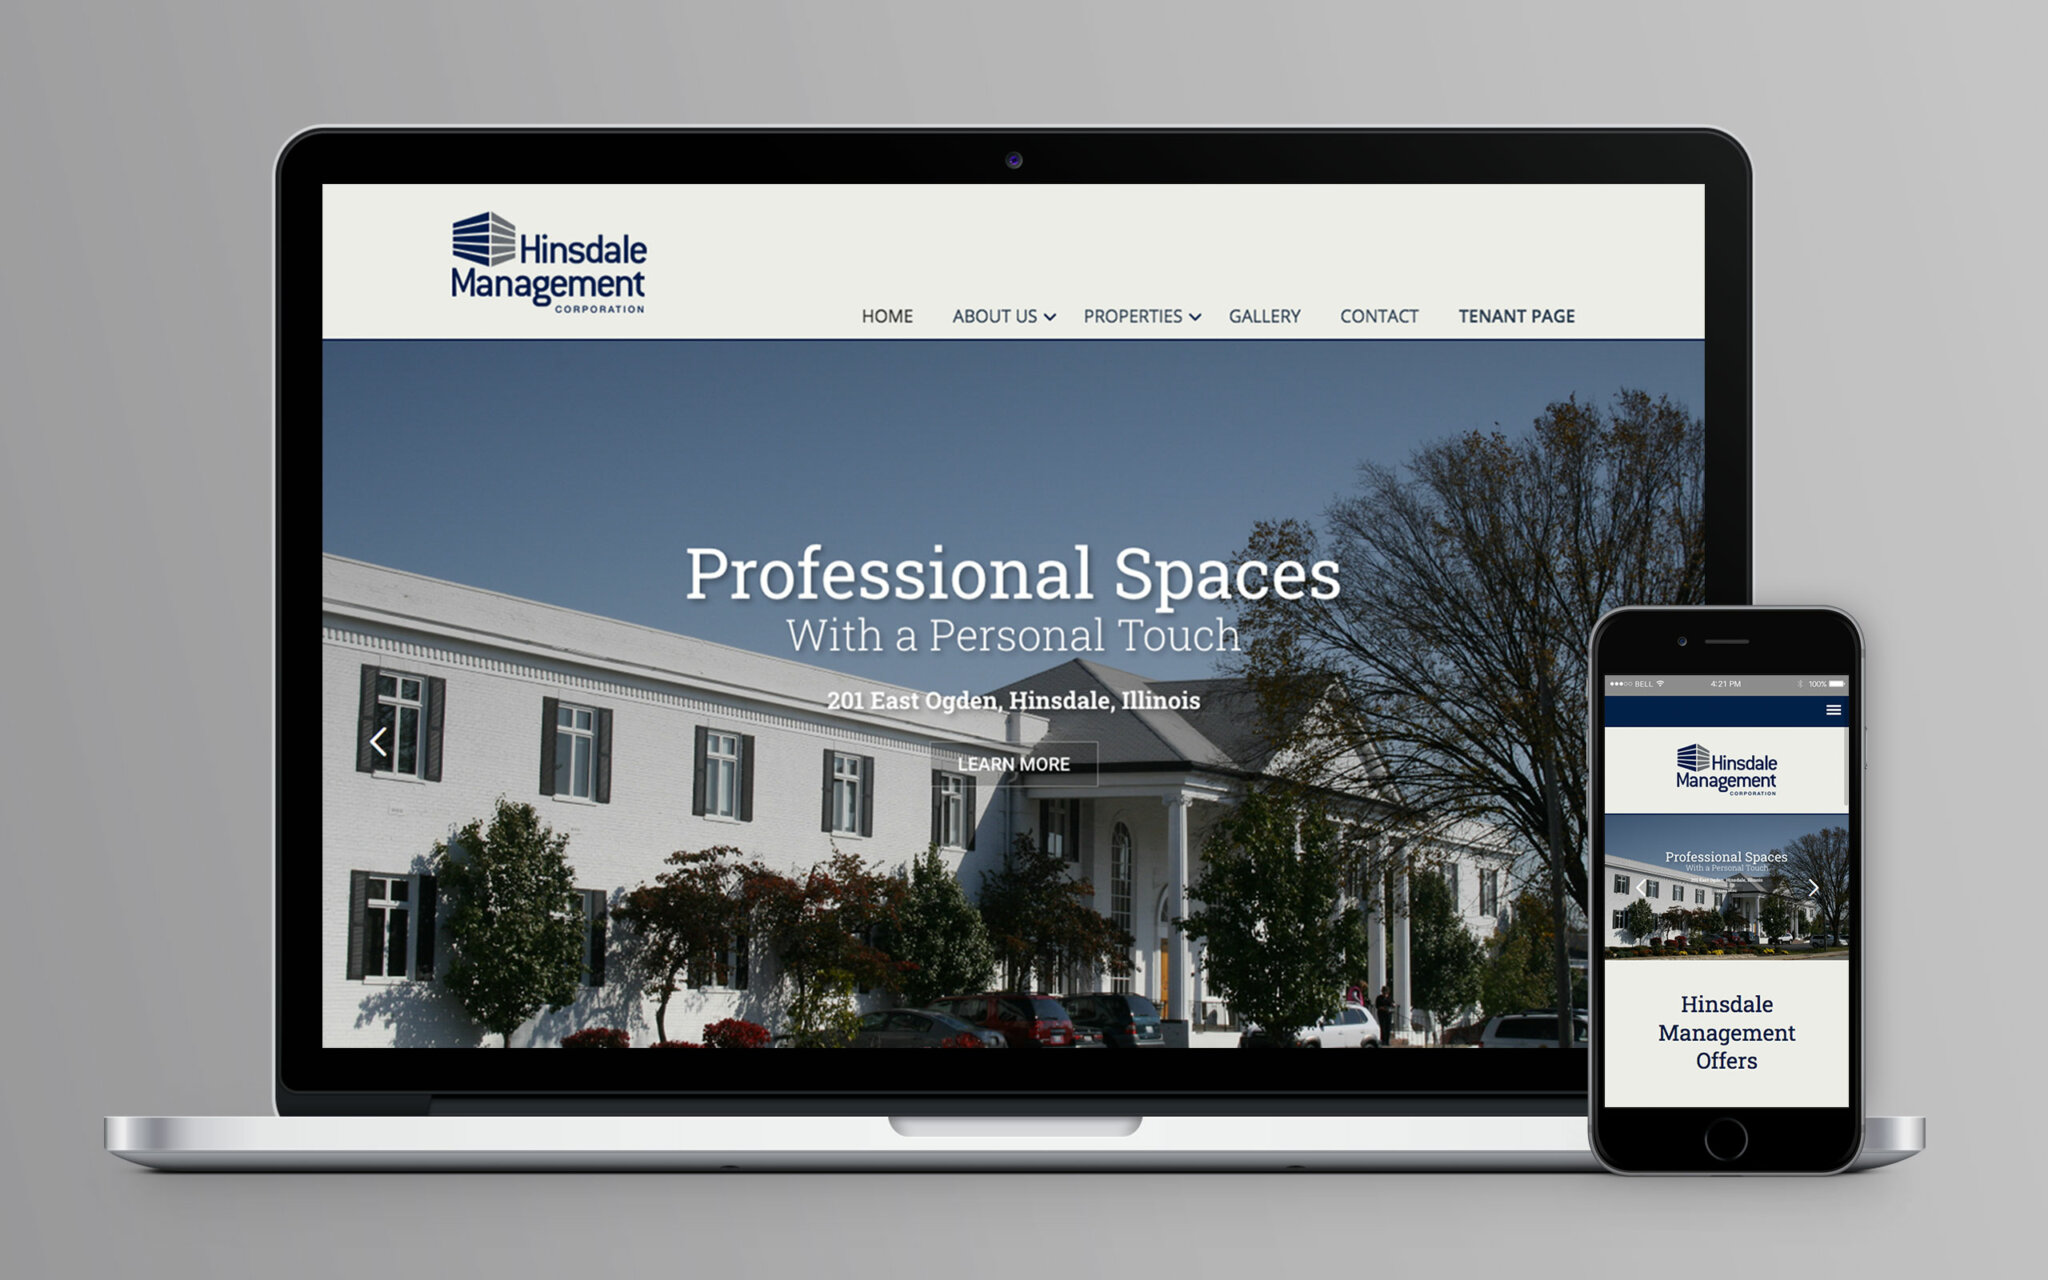 Hinsdale Management Corporation Website Home